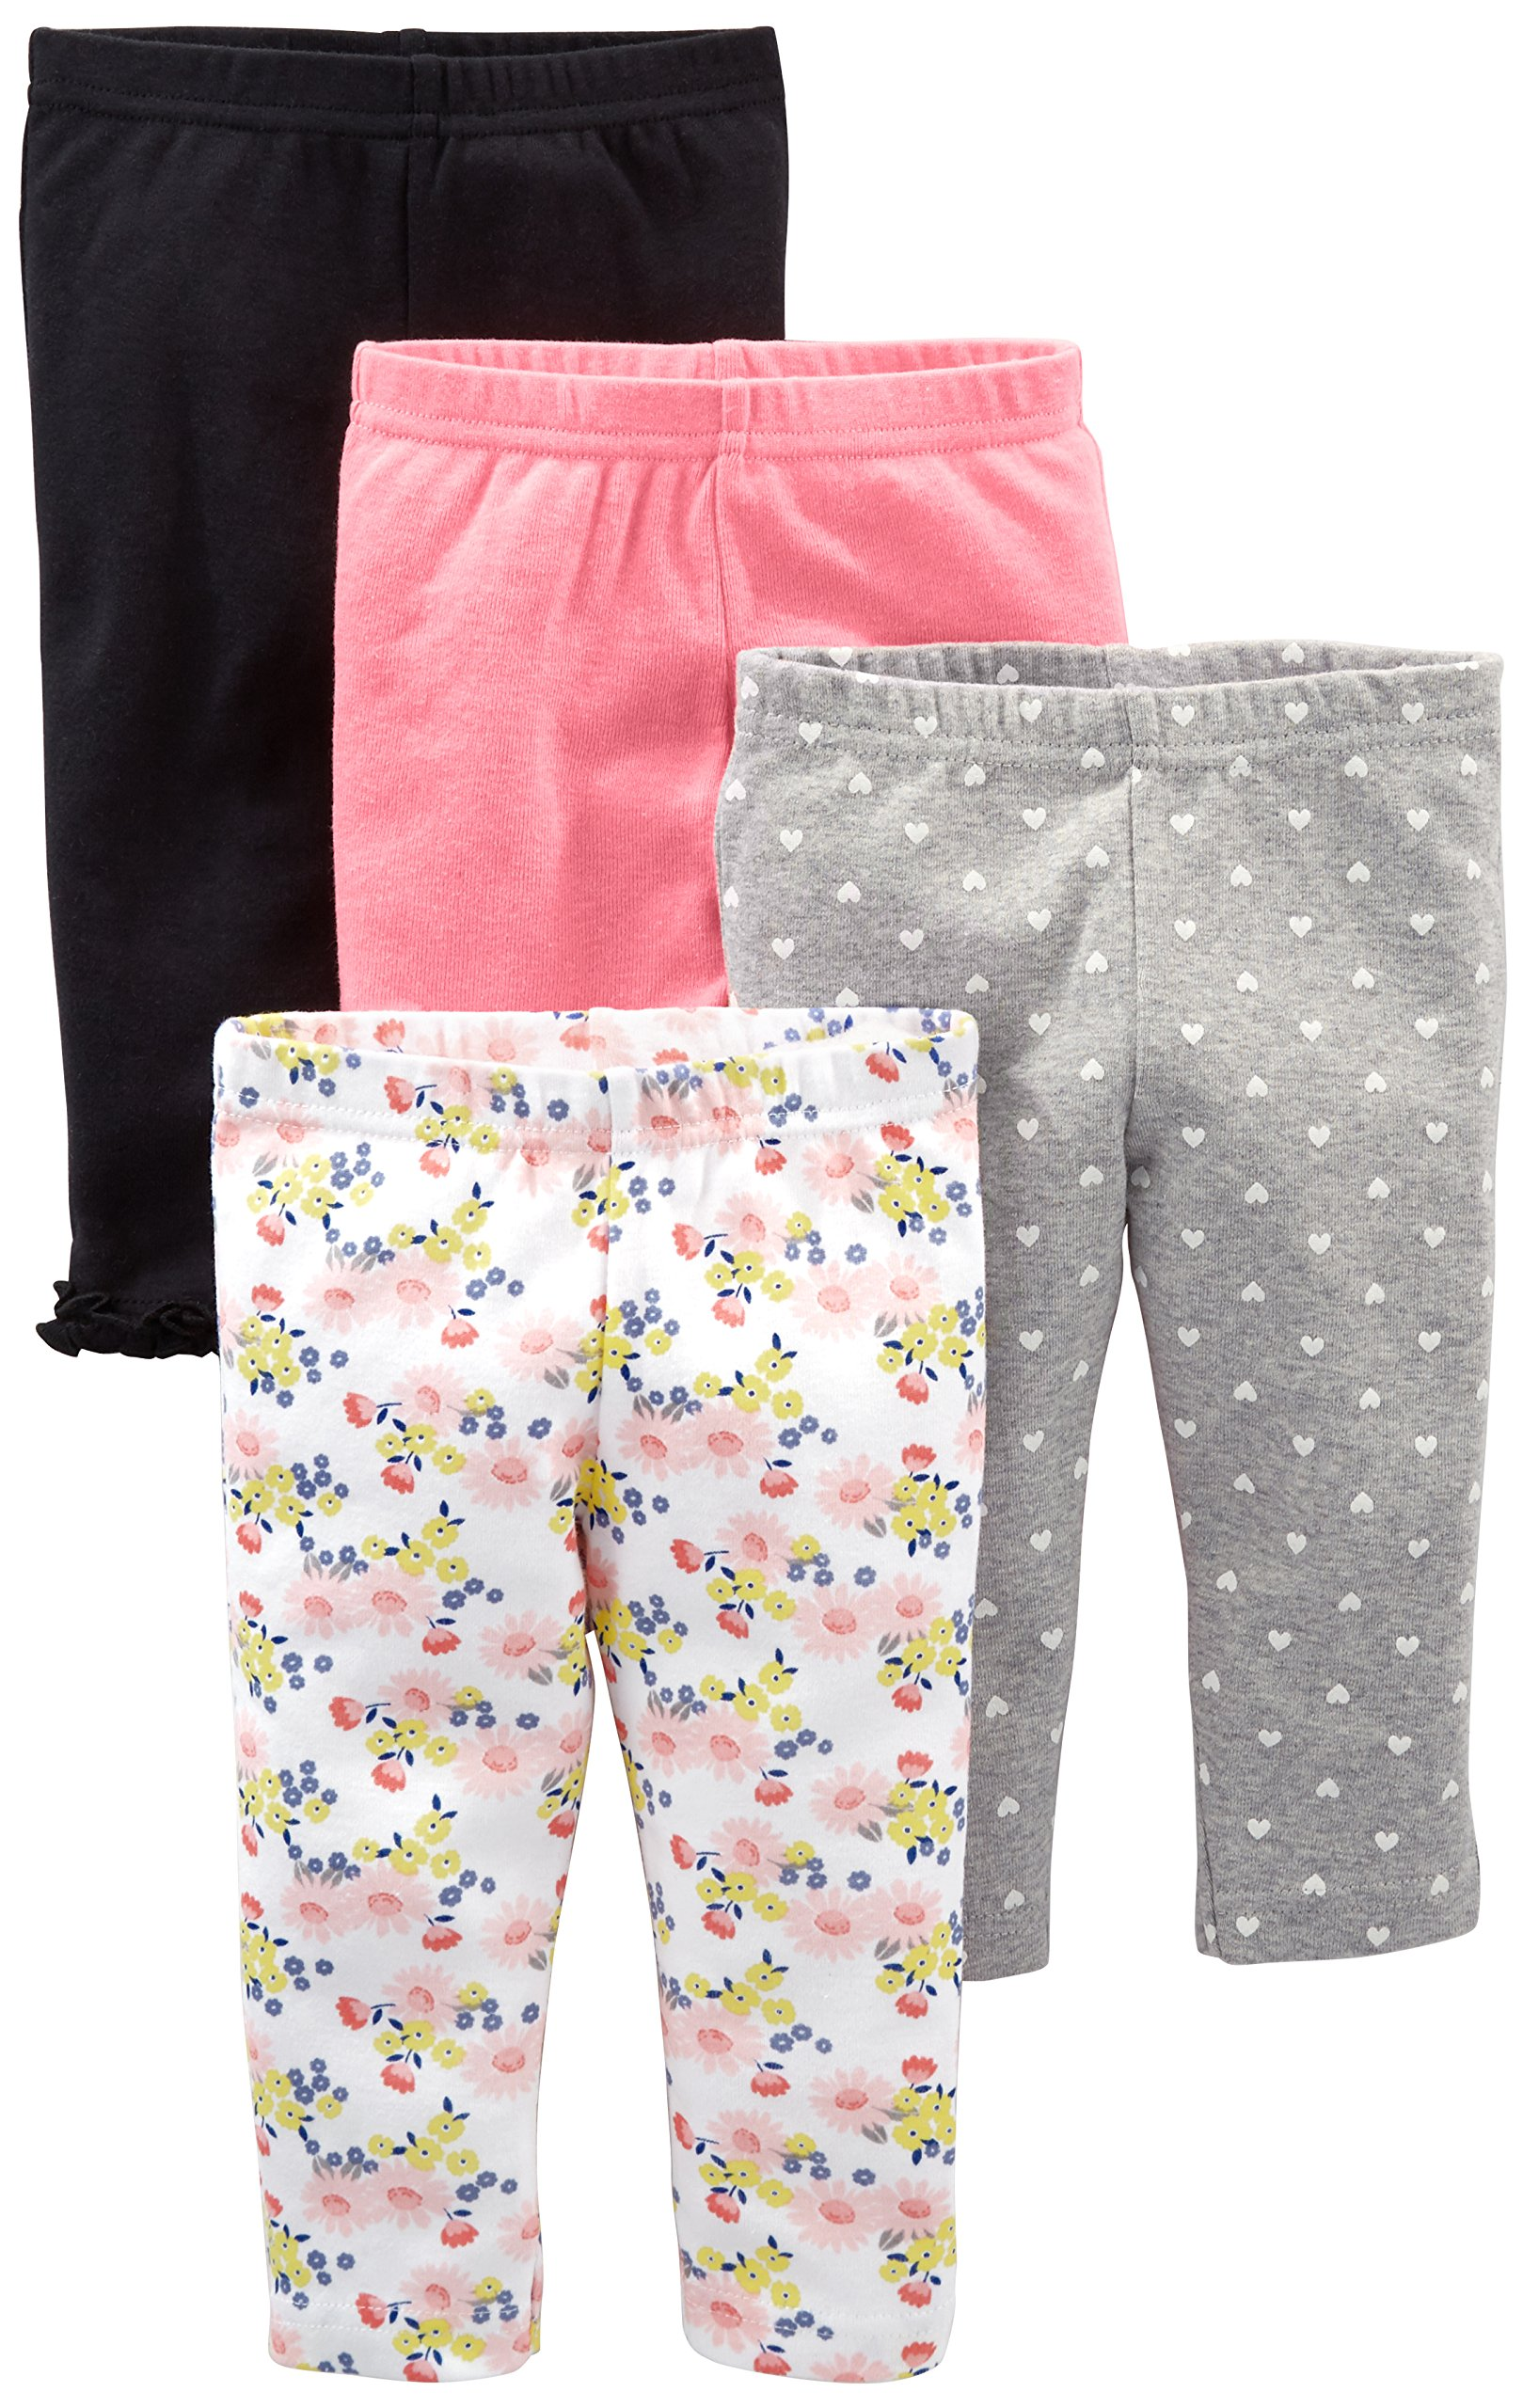 Simple Joys by Carter's Baby Girls' 4-Pack Pant, Navy, Gray Dot, Pink, Floral, Preemie